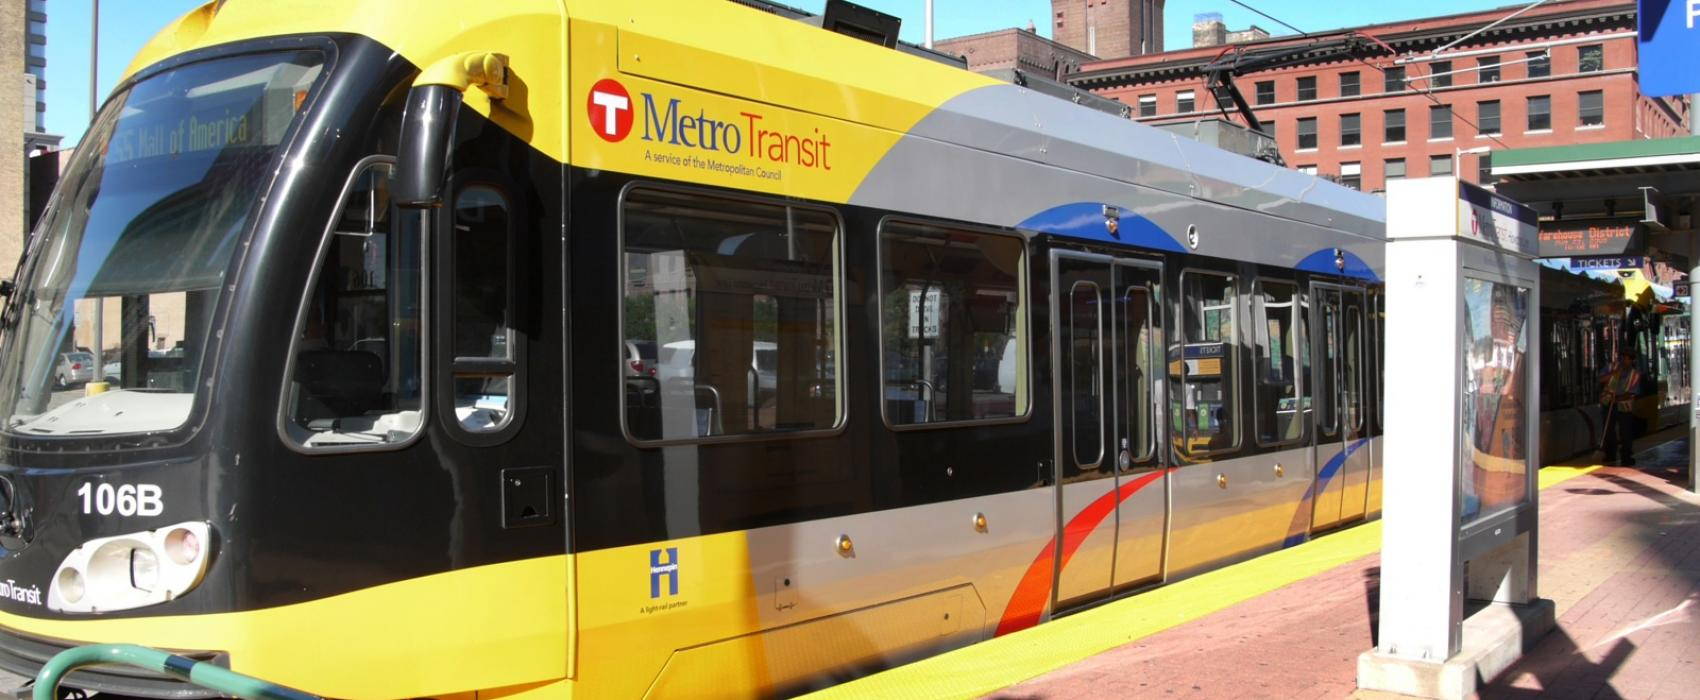 A yellow Metro Transit light rail train at a station